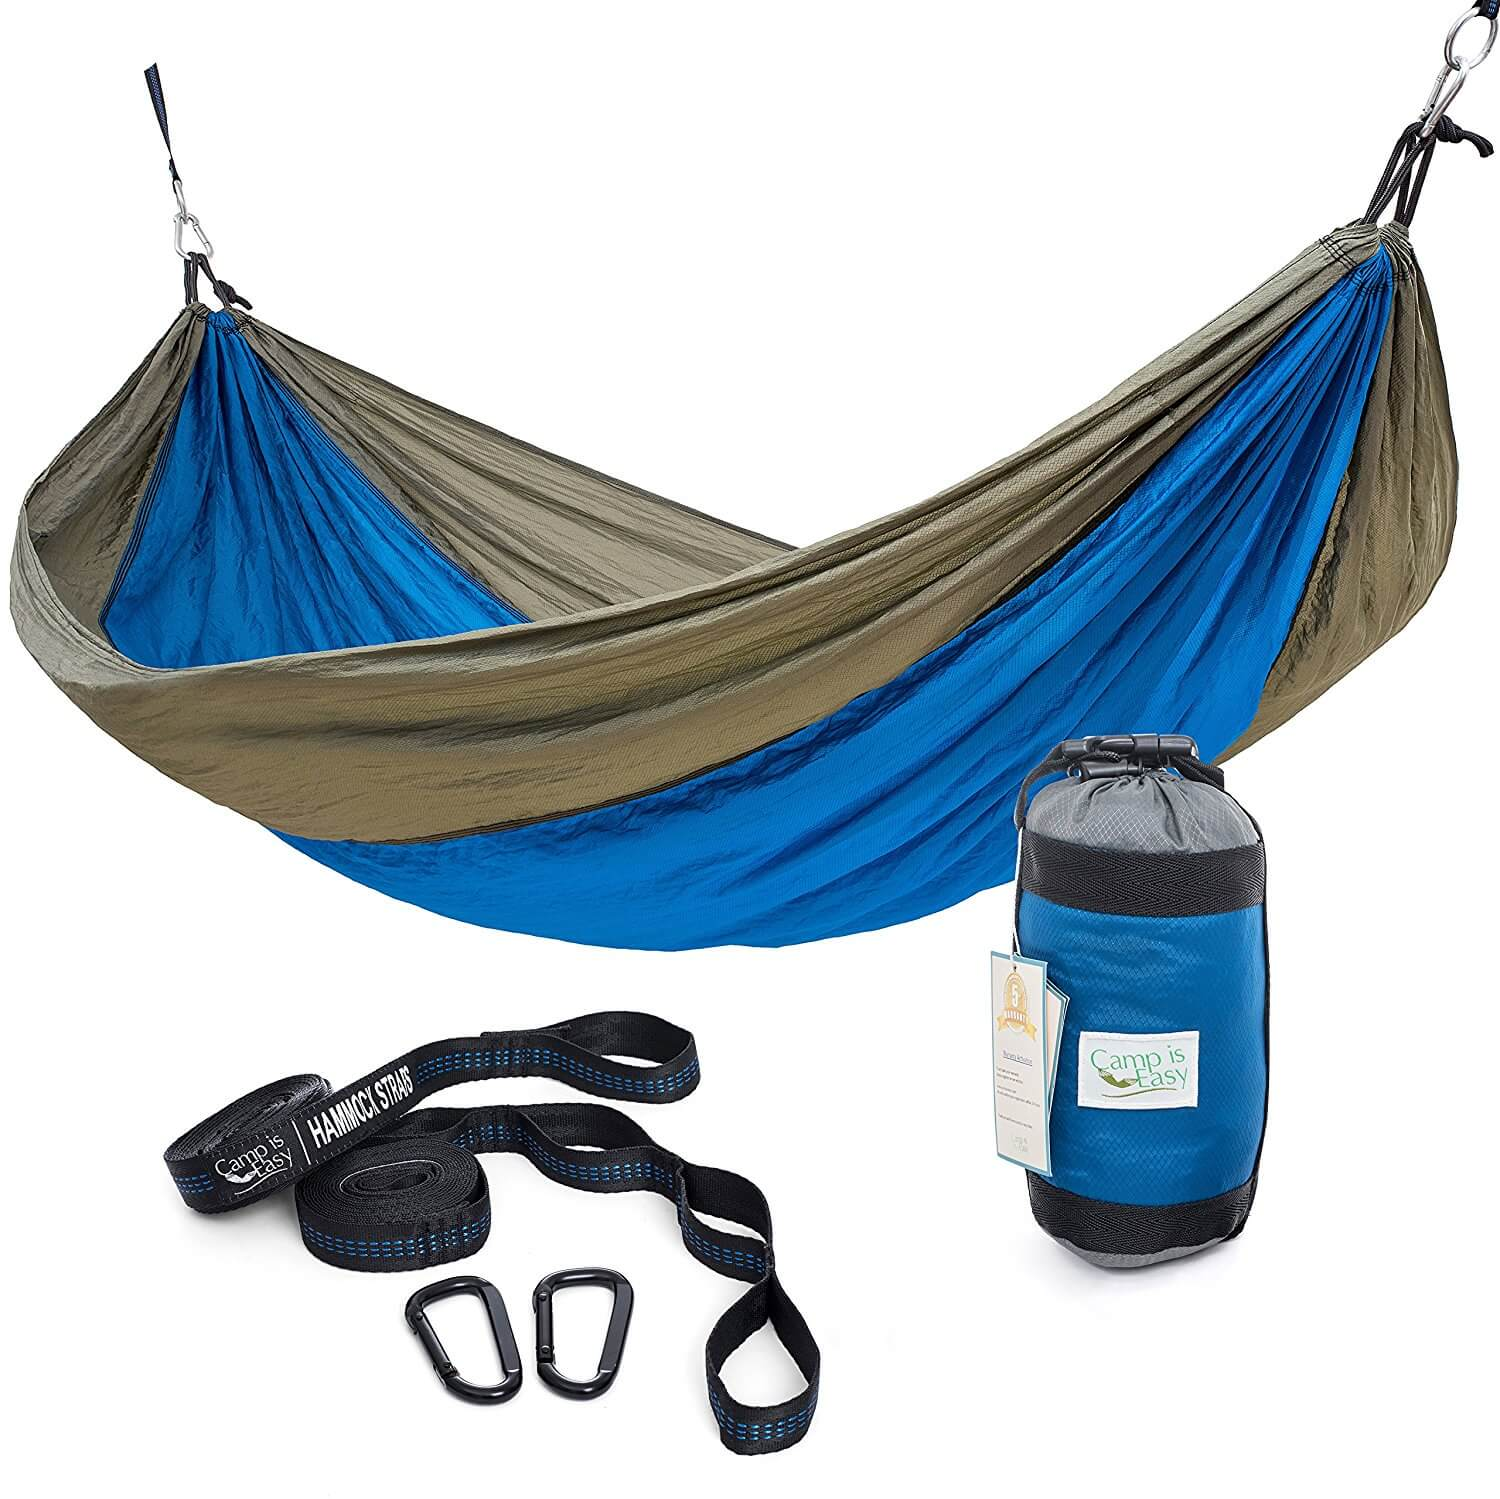 Camp Is Easy Single Parachute Camping Hammock Review